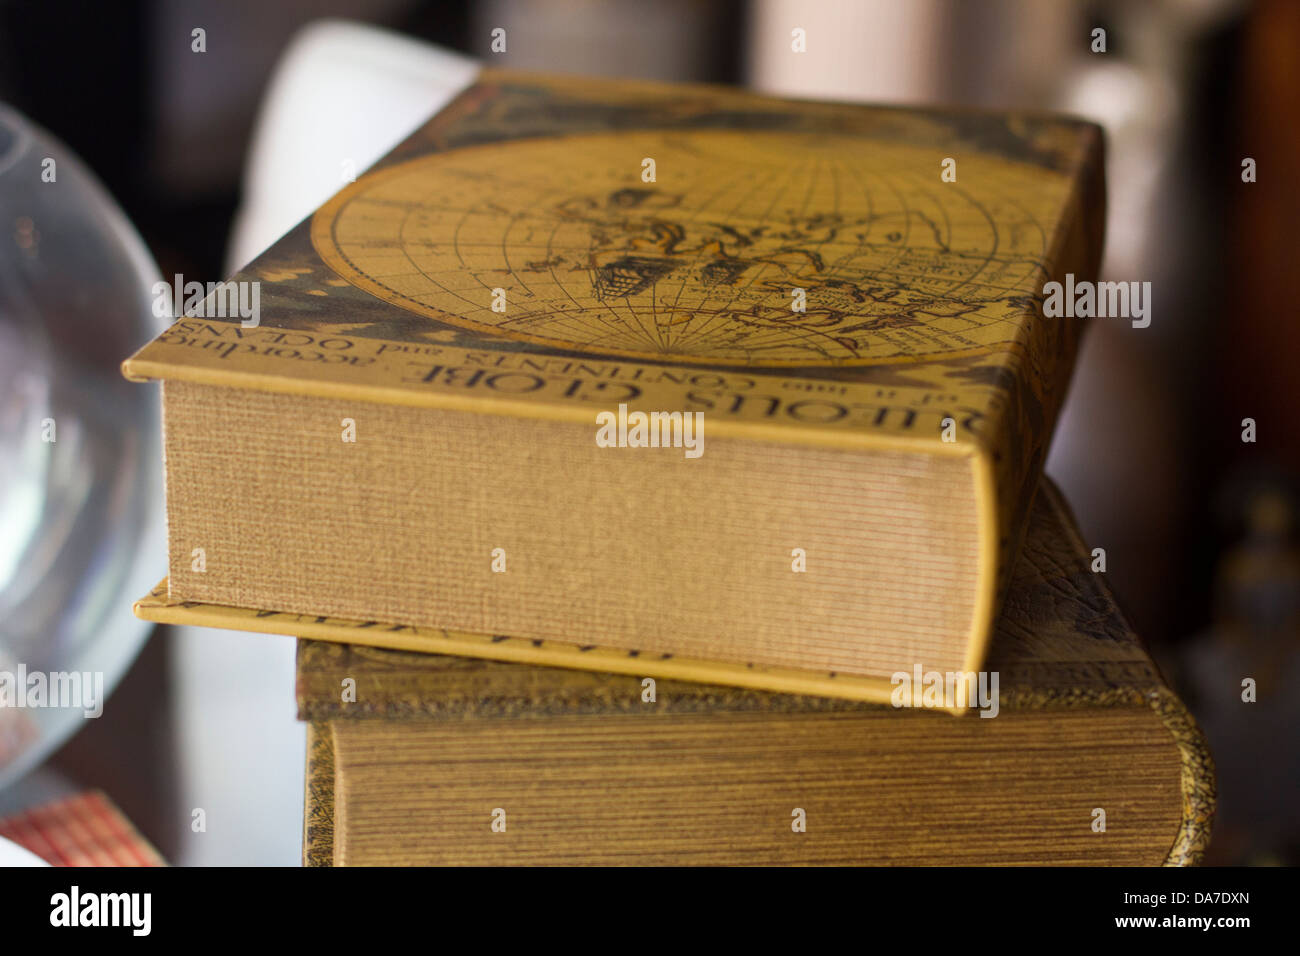 Stack of books - Stock Image